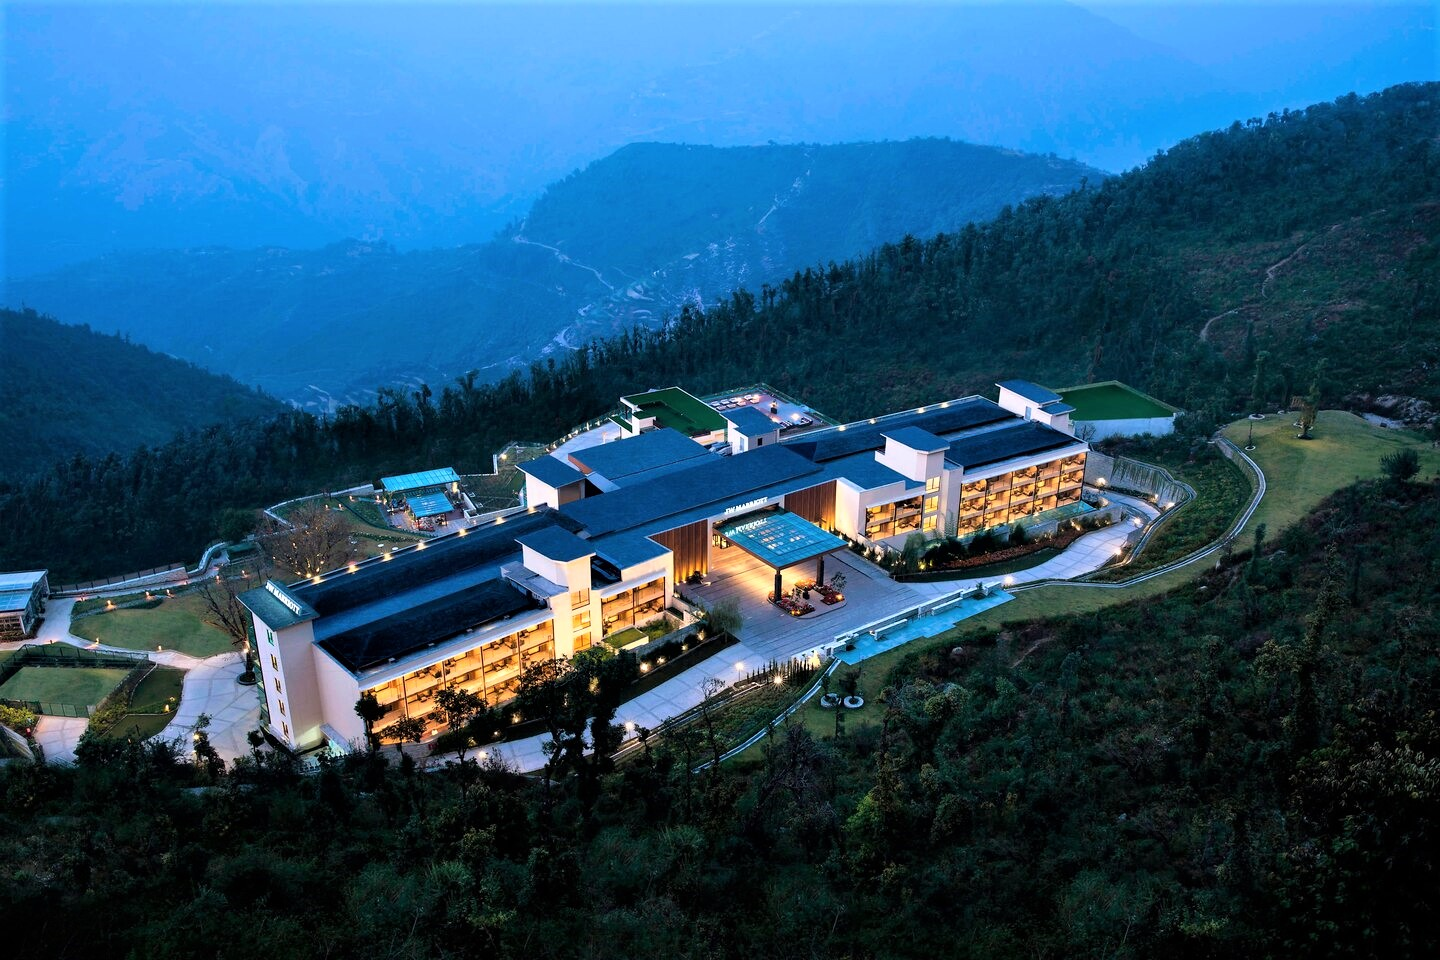 Uttarakhand Tourism: JW Marriott at Mussoorie